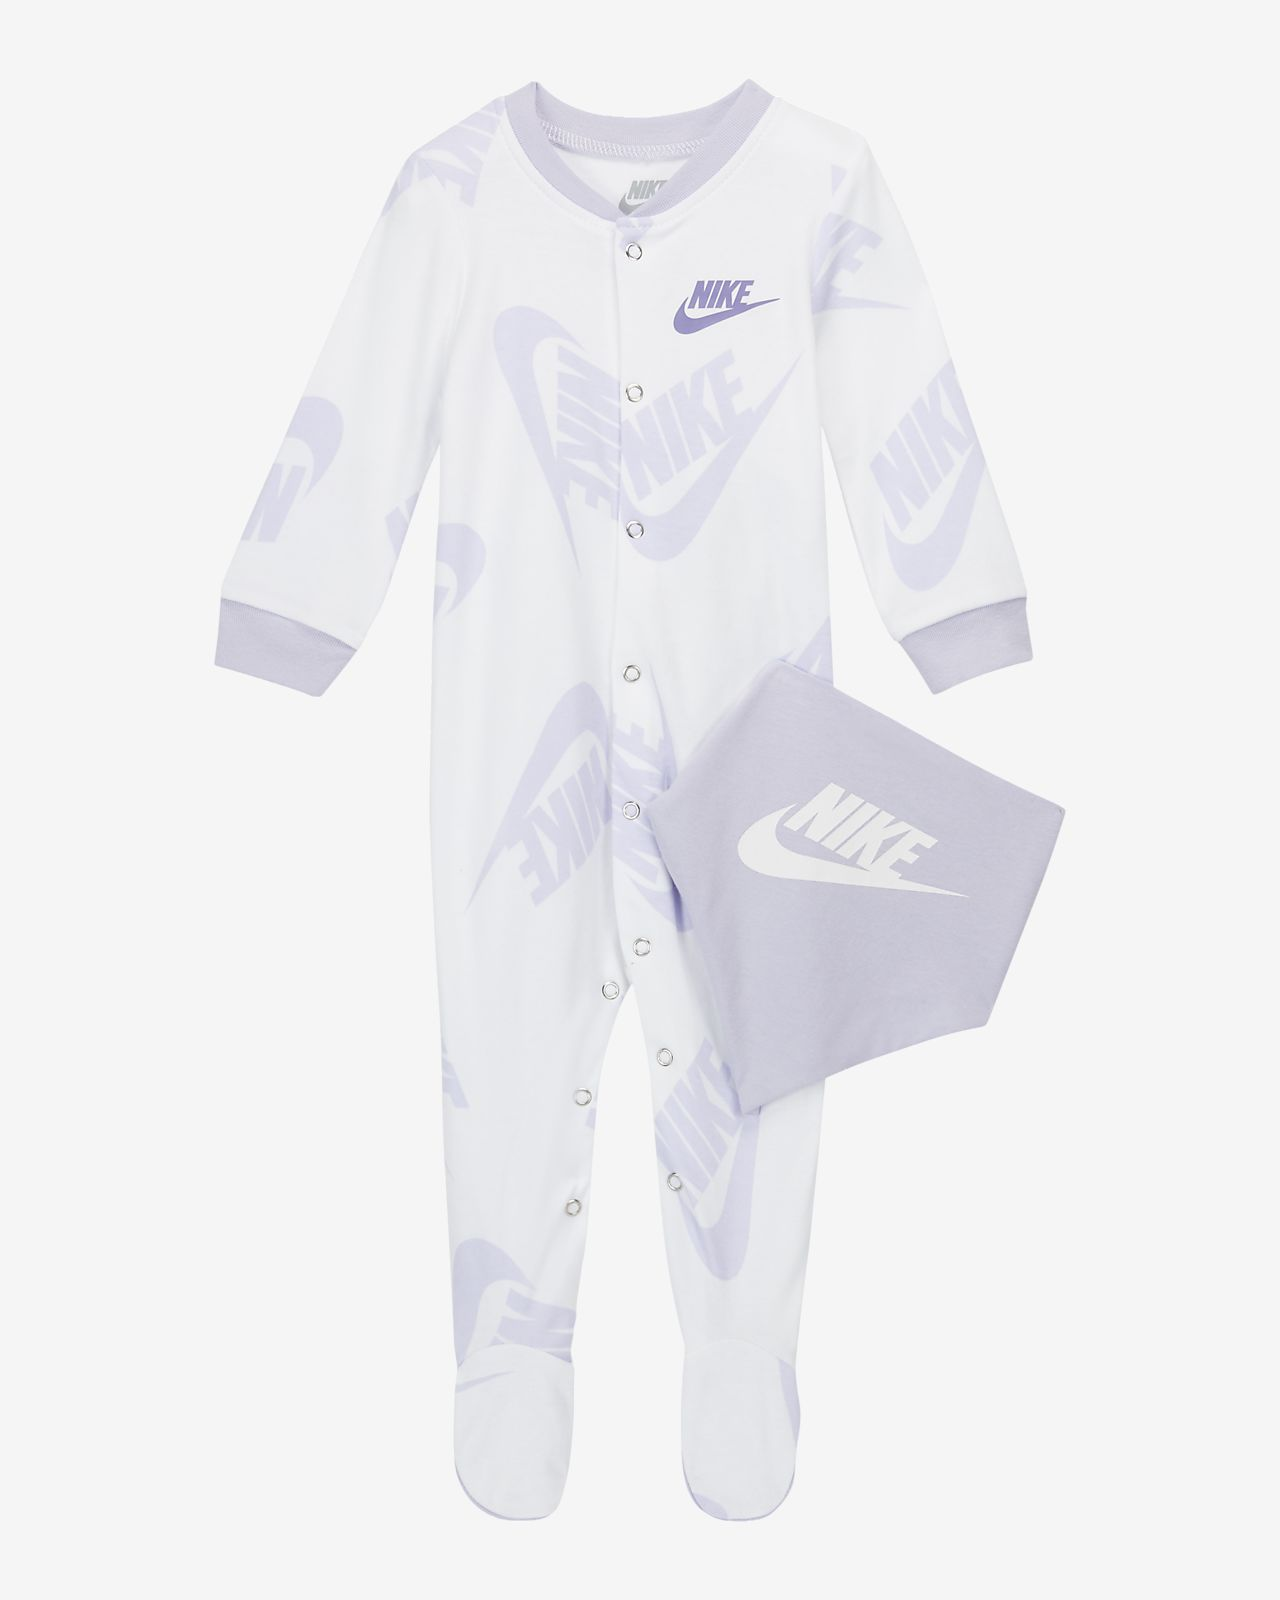 Nike Sportswear Baby (0-9M) Coverall and Bib Set